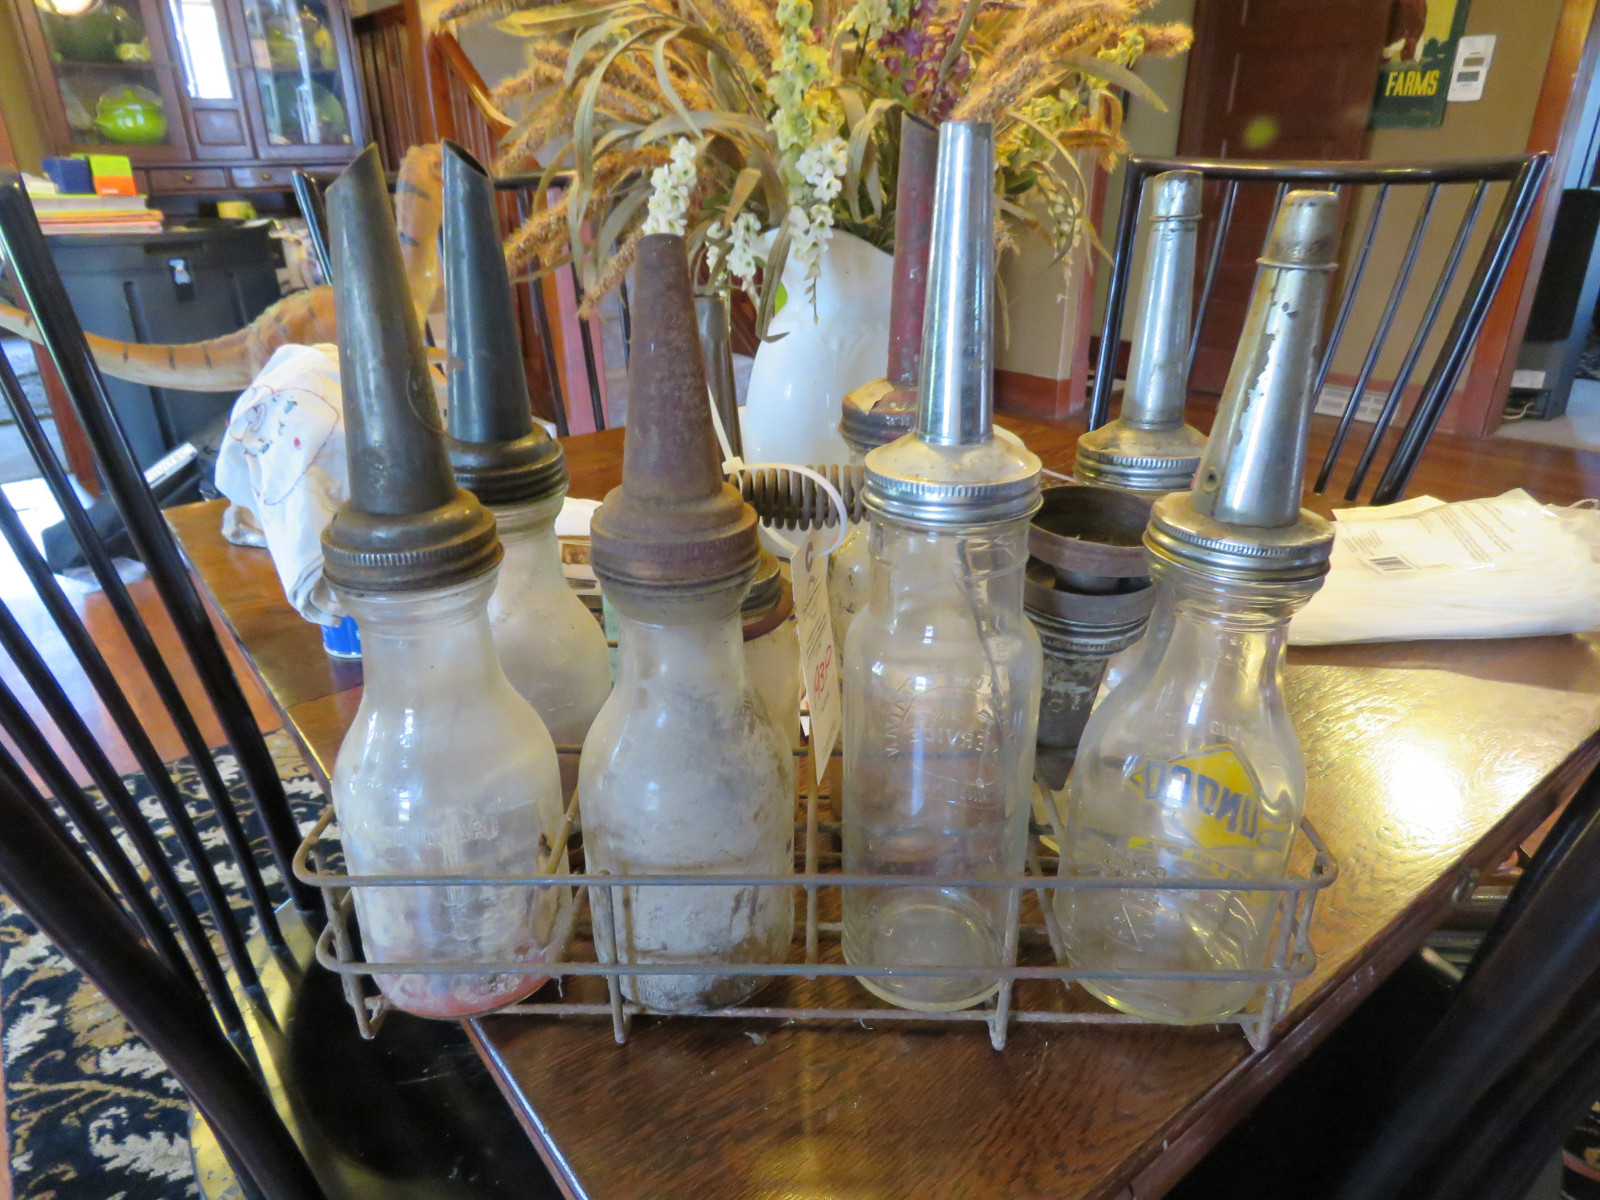 VINTAGE OIL RACK WITH ASSORTED 8 GLASS OIL BOTTLES - Image 1